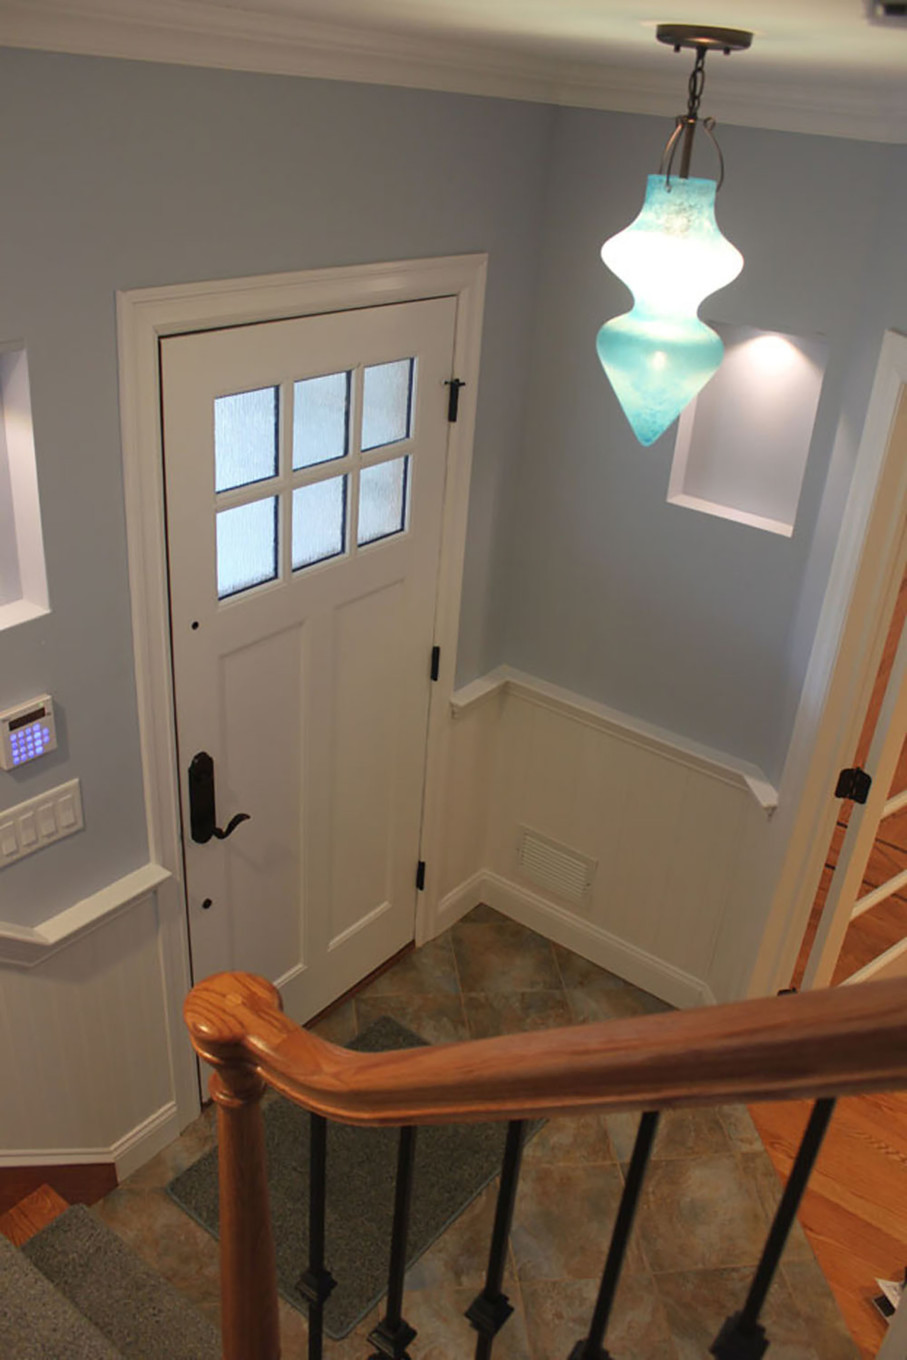 Light Blue with White Trim in Entrance Hall